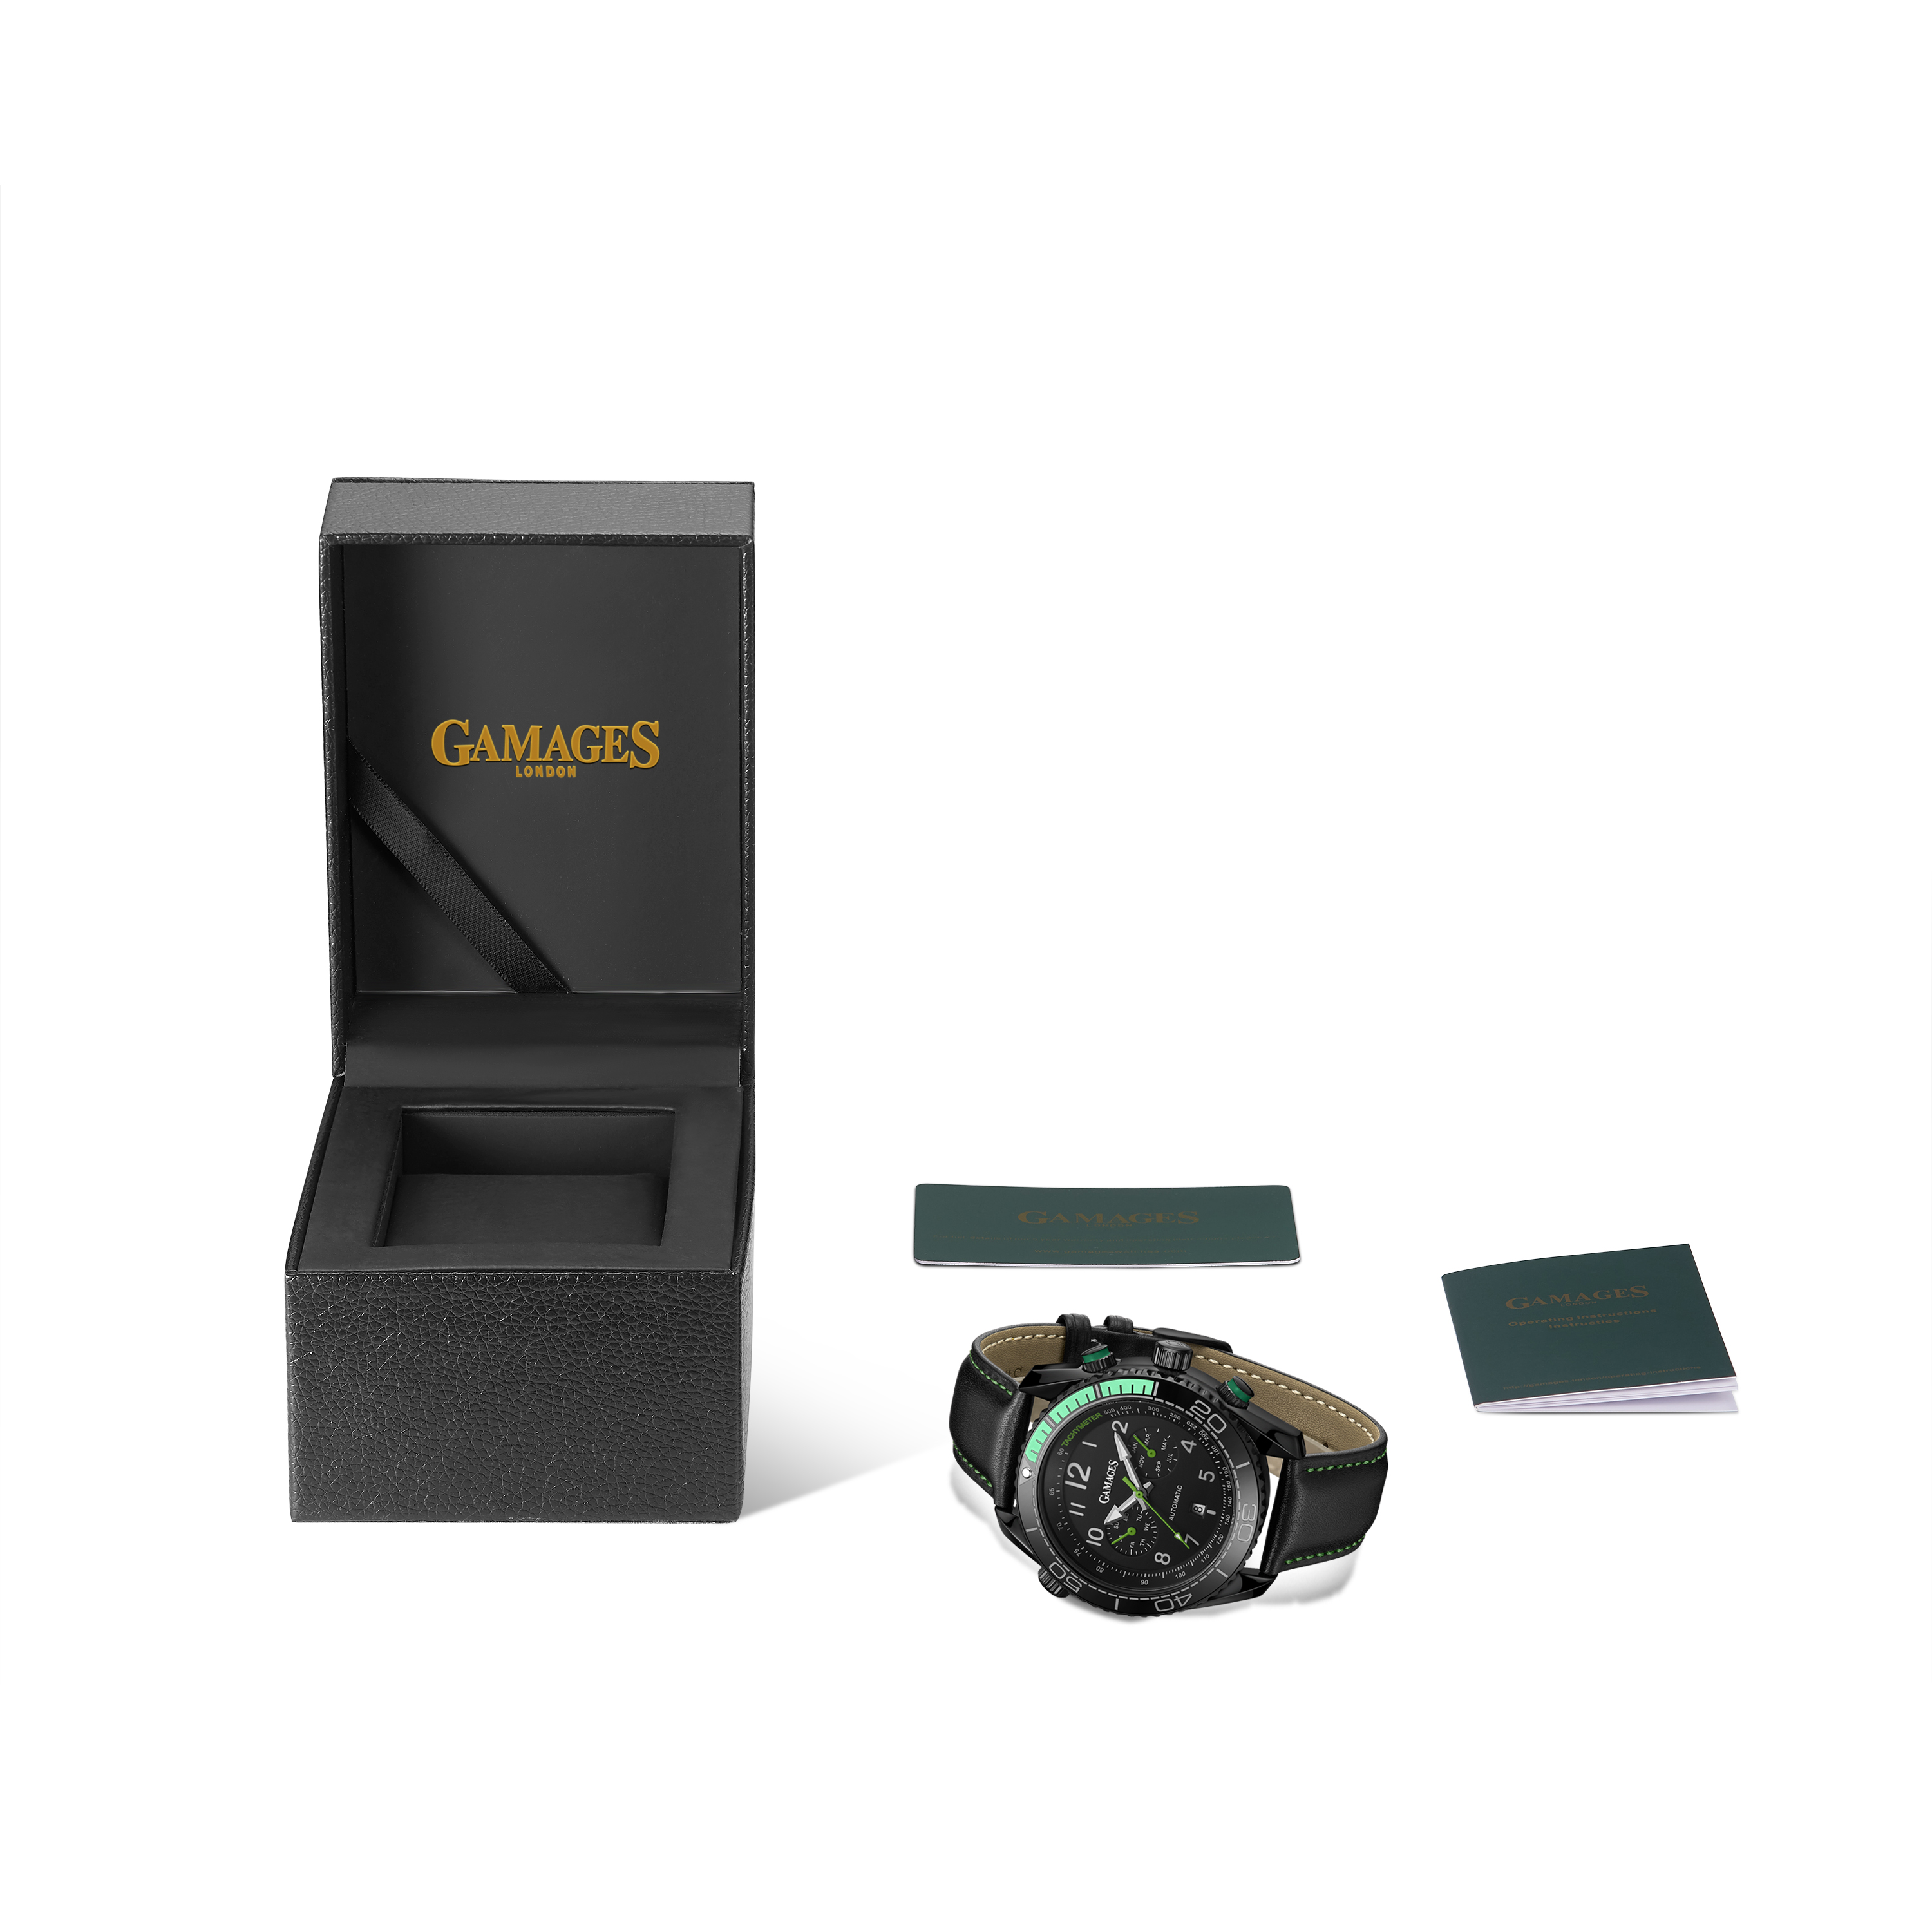 Limited Edition Hand Assembled GAMAGES Supreme Automatic Green – 5 Year Warranty & Free Delivery - Image 4 of 7